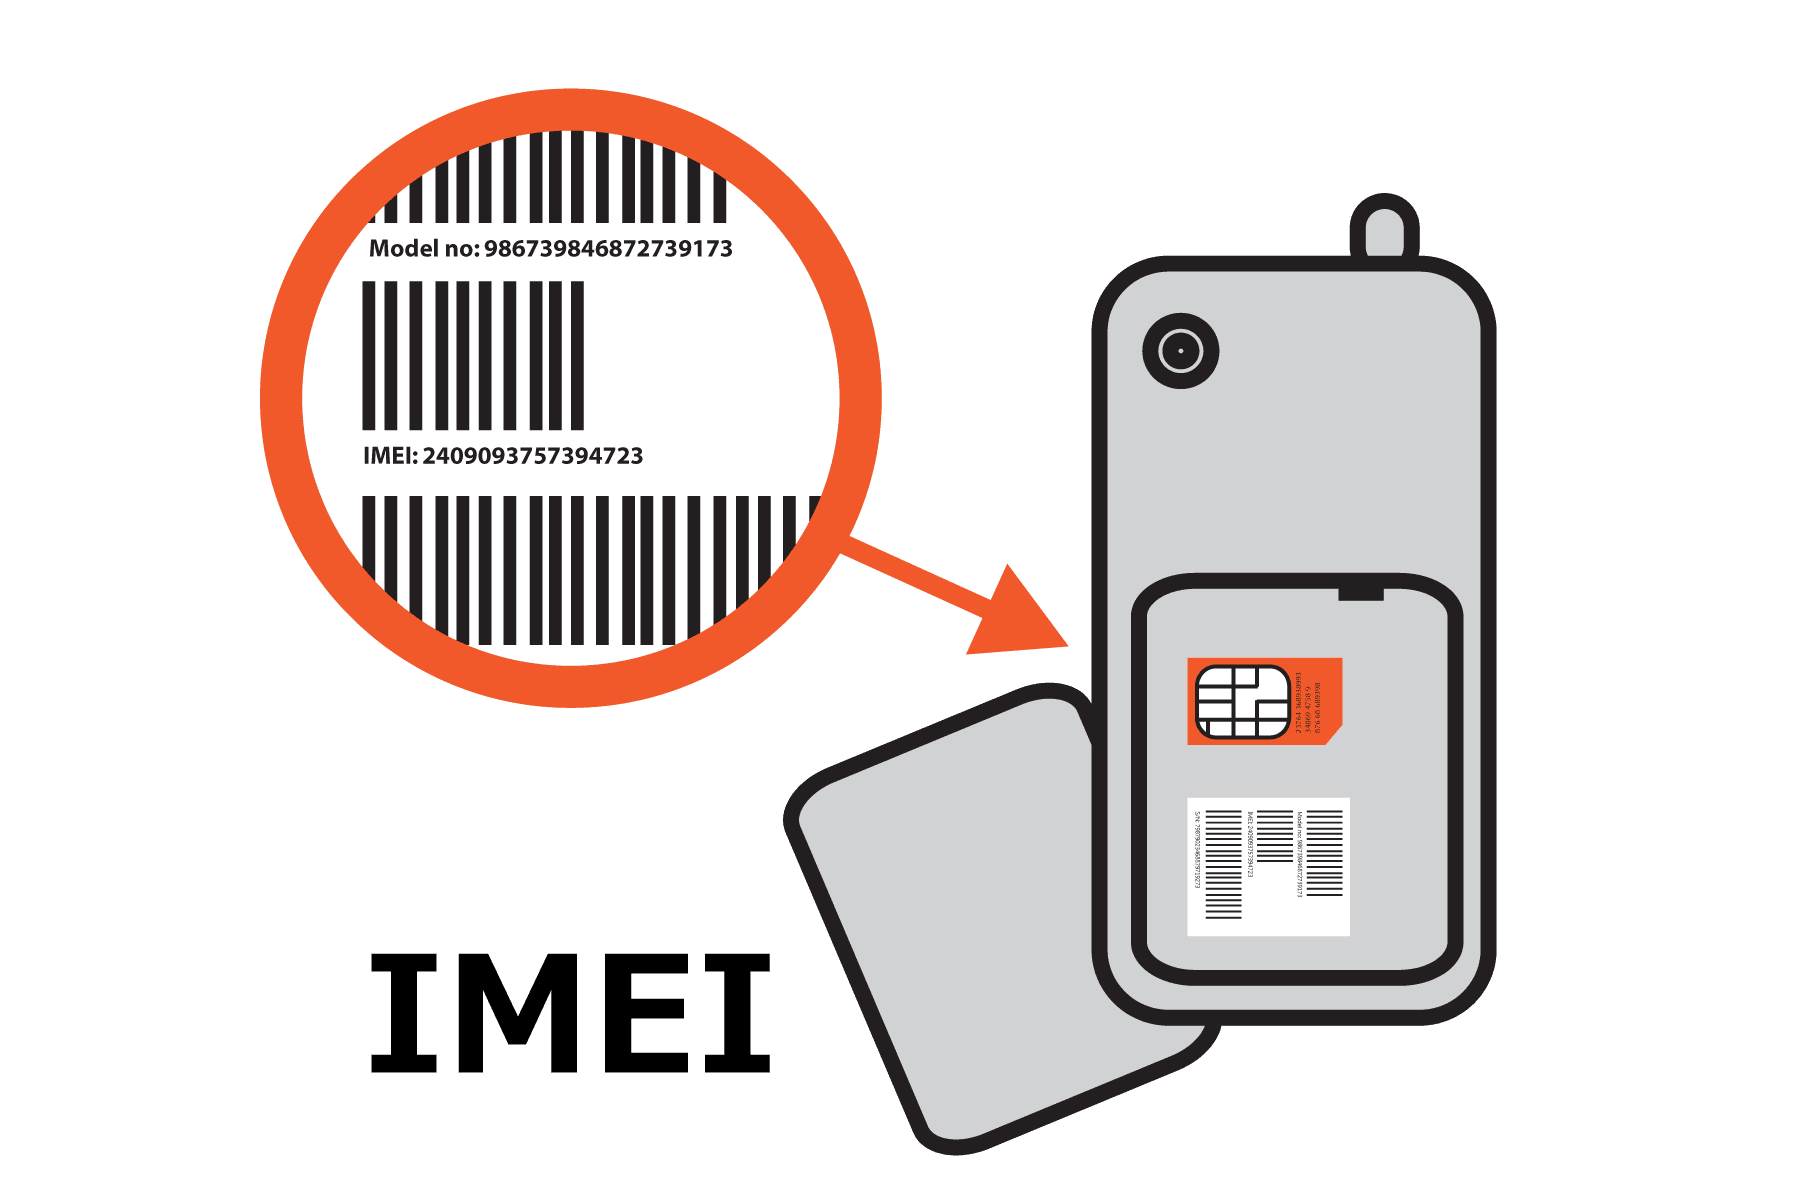 Tracing of Lost mobile through IMEI number in India